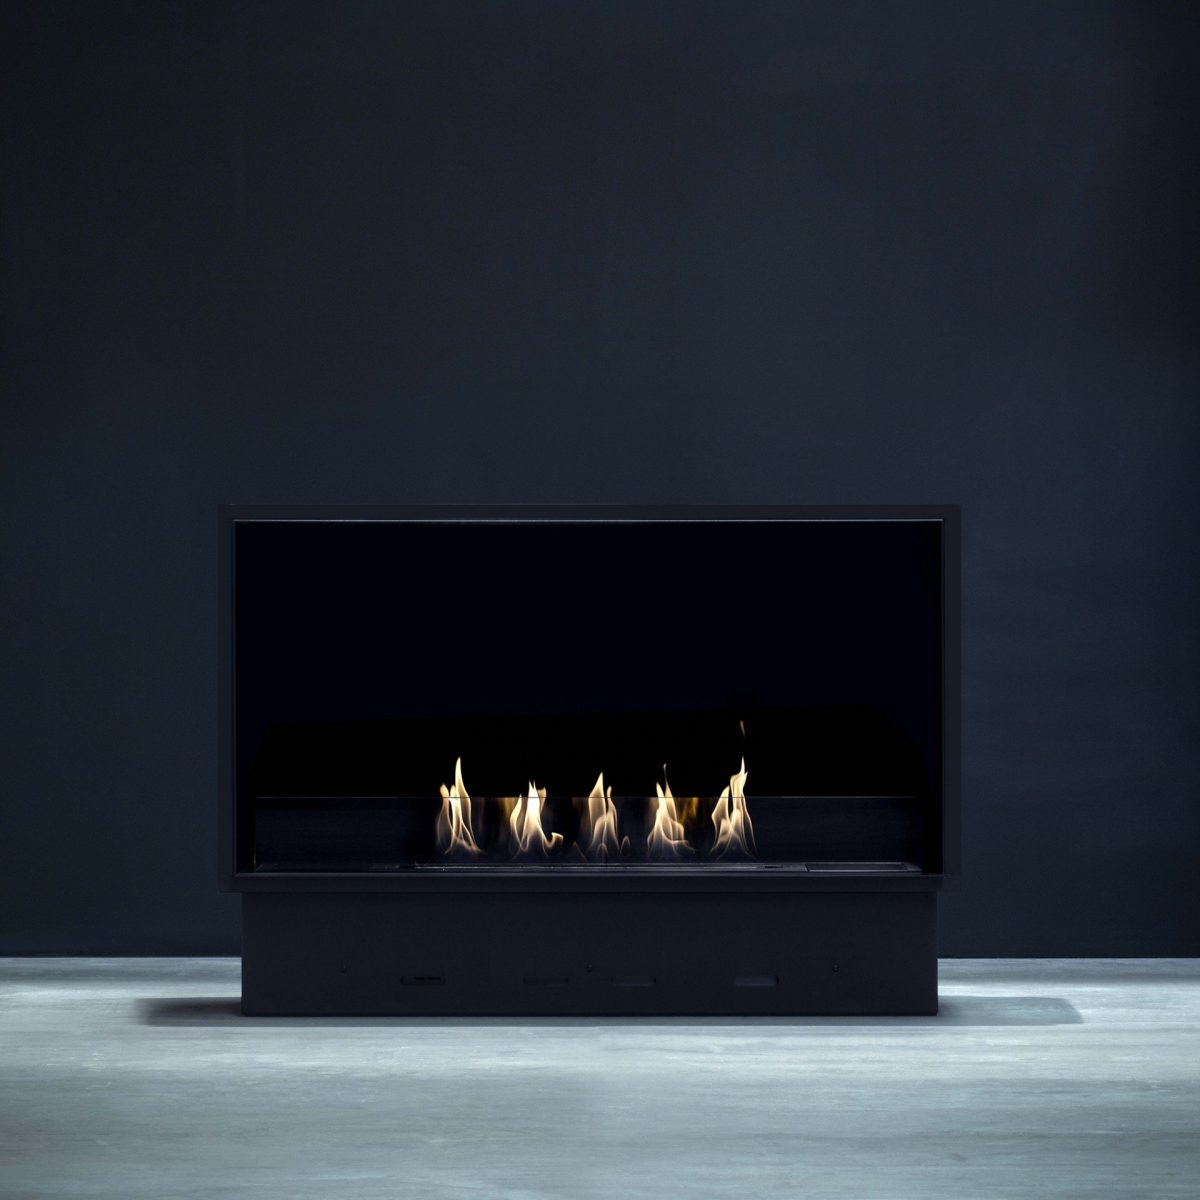 xglammfire_fireplace_glammbox_hd_010-1920×1920.jpg.pagespeed.ic.vYNcAtrQFZ